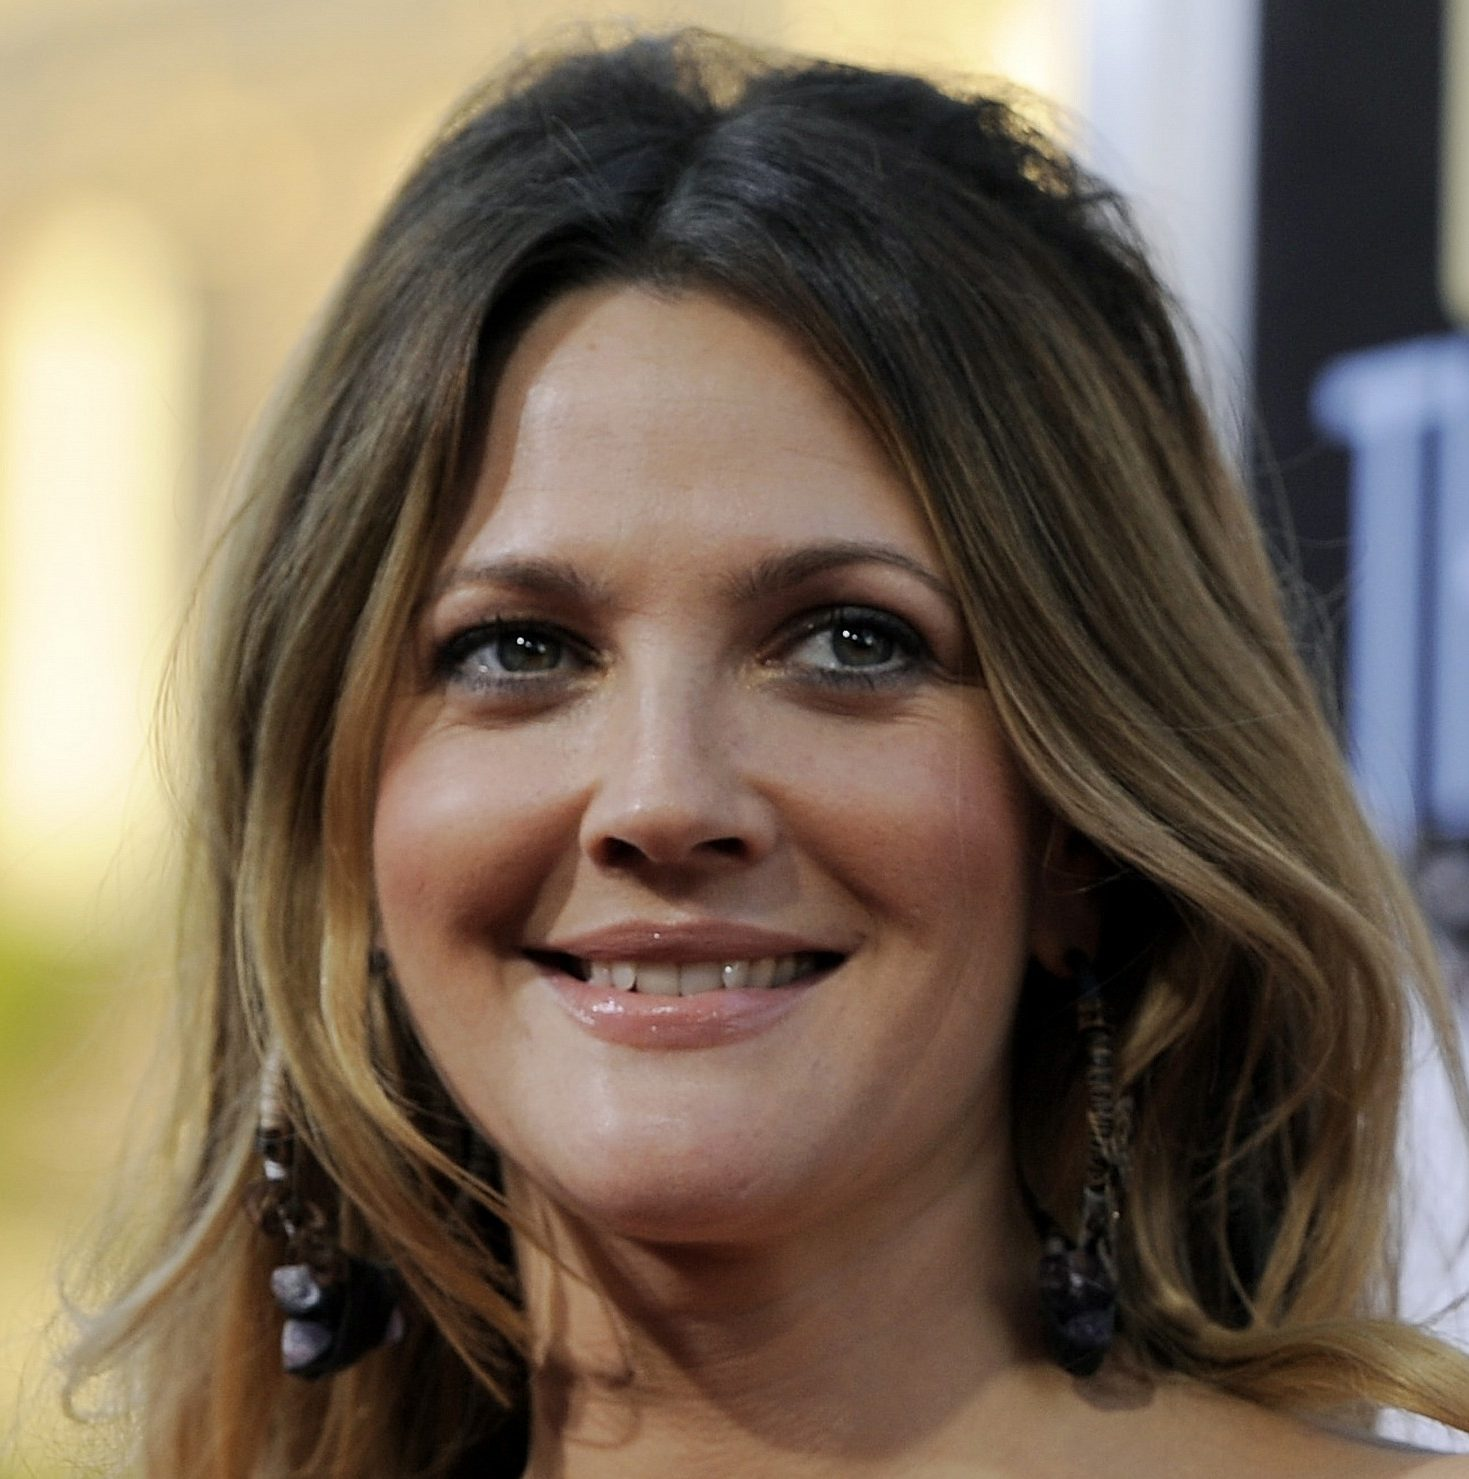 dreplace3 e1584457812781 20 Things You Might Not Have Realised About Drew Barrymore